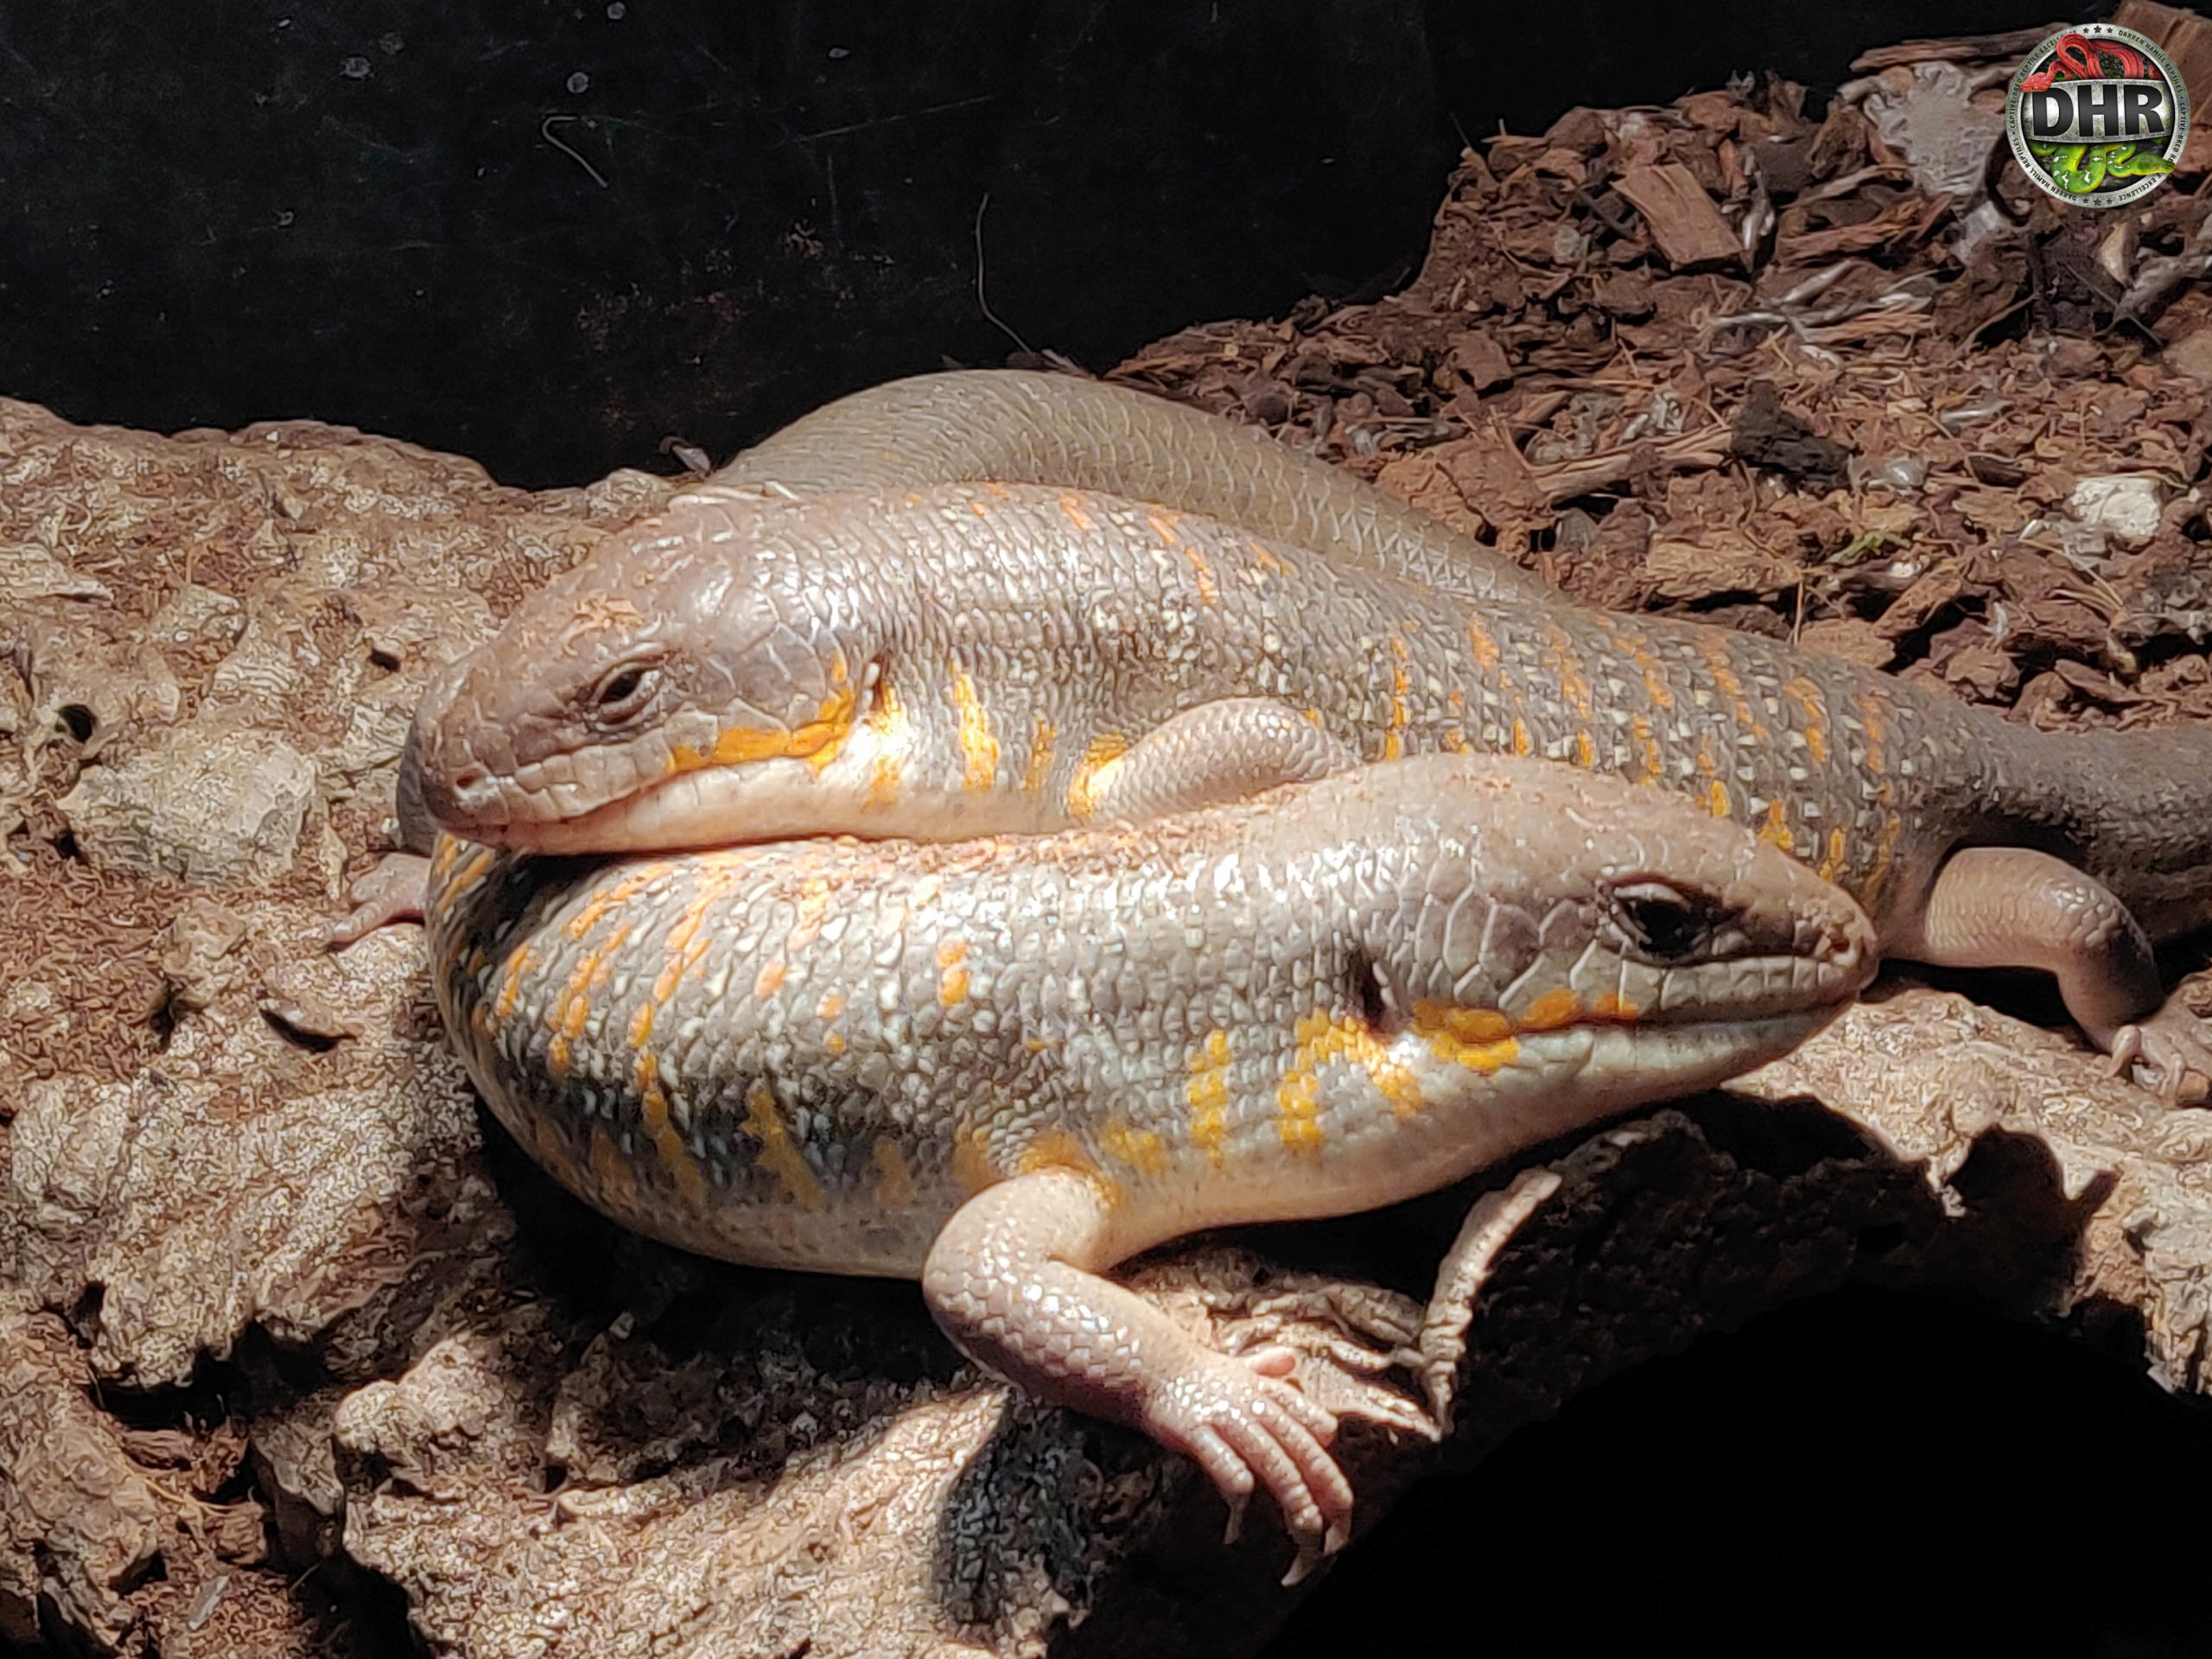 We rarely take pictures of these special skinks, True Berber Skinks (Eumeces algeriensis)